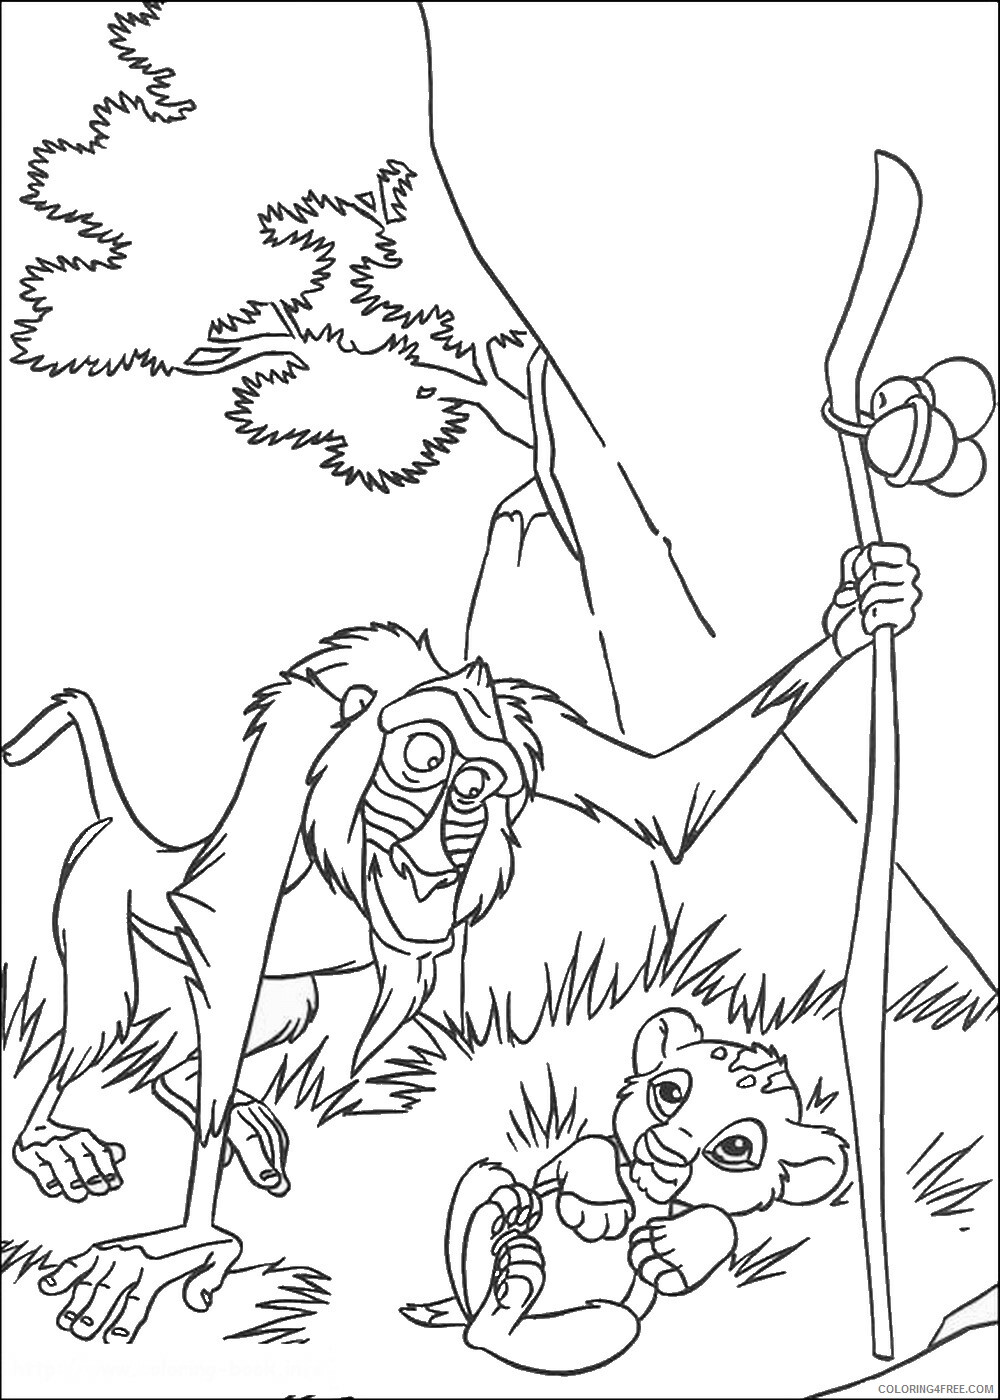 The Lion King Coloring Pages TV Film lionking_25 Printable 2020 09154 Coloring4free